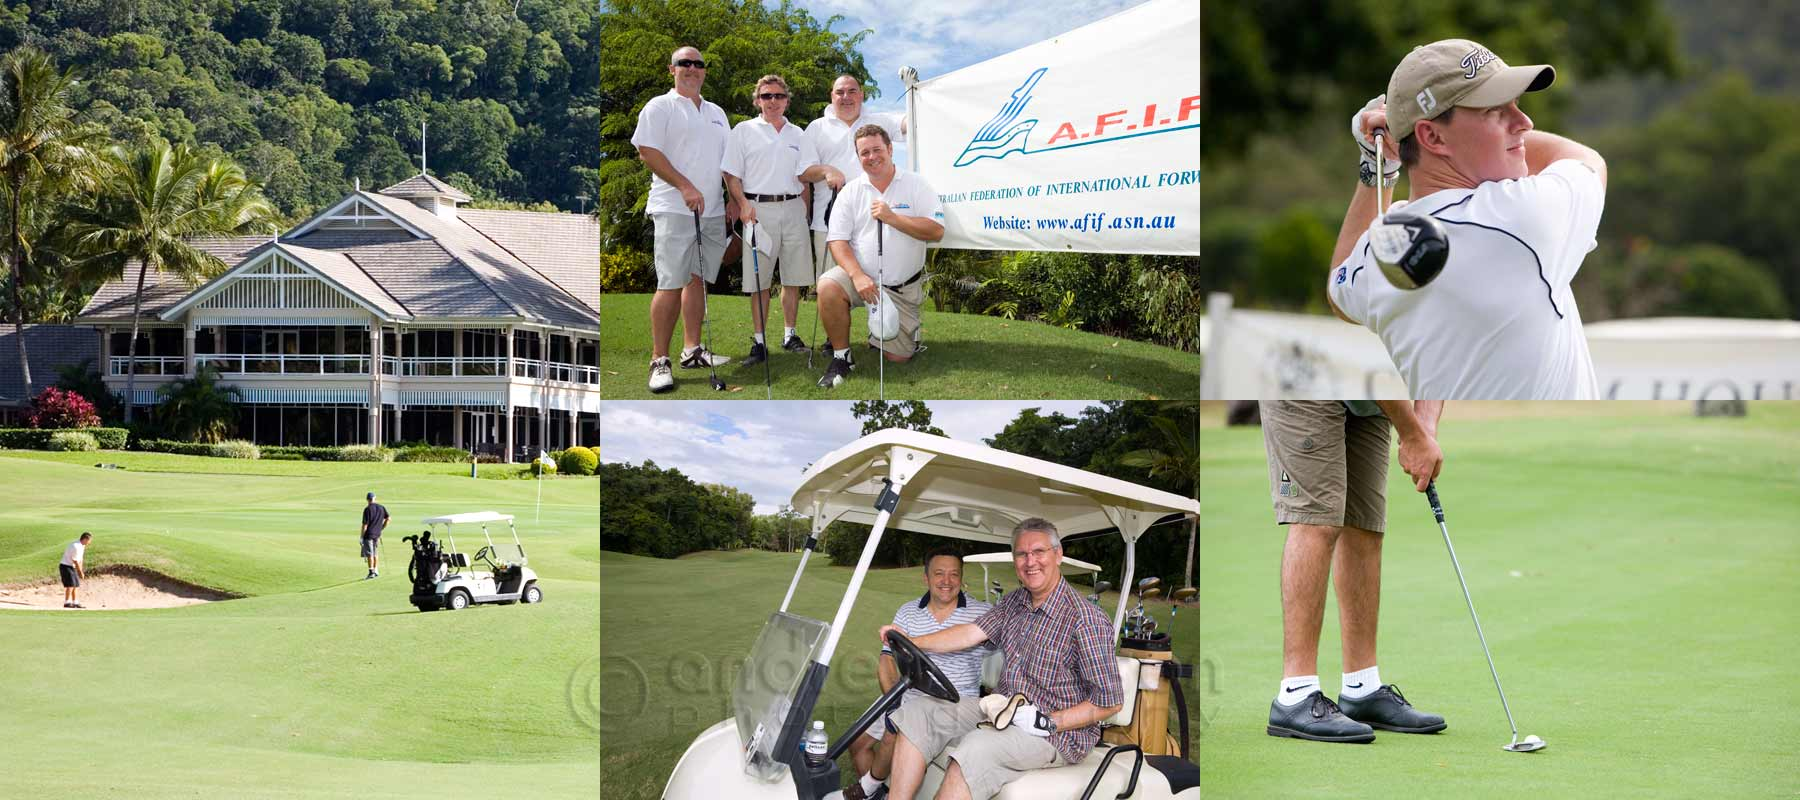 Event Photography - Images captured at AFIF Conference Golf Day, Paradise Palms Cairns